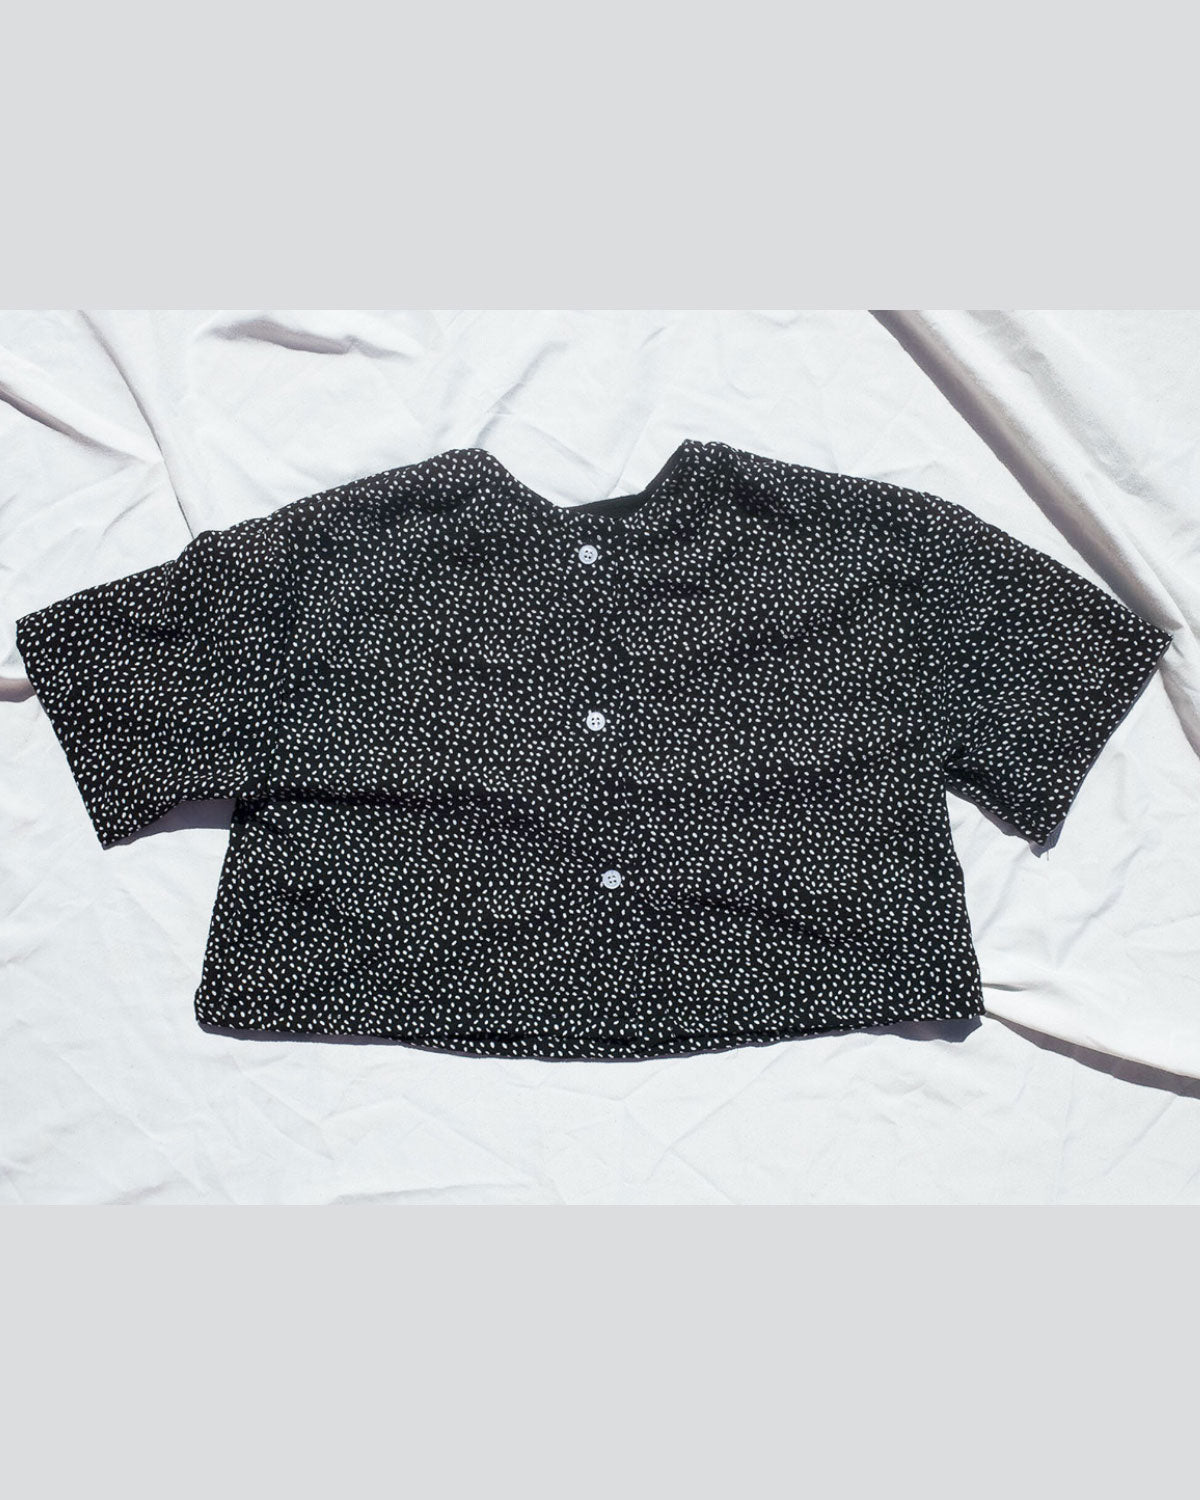 polka dots button front top shirt  and 3/4 sleeves.